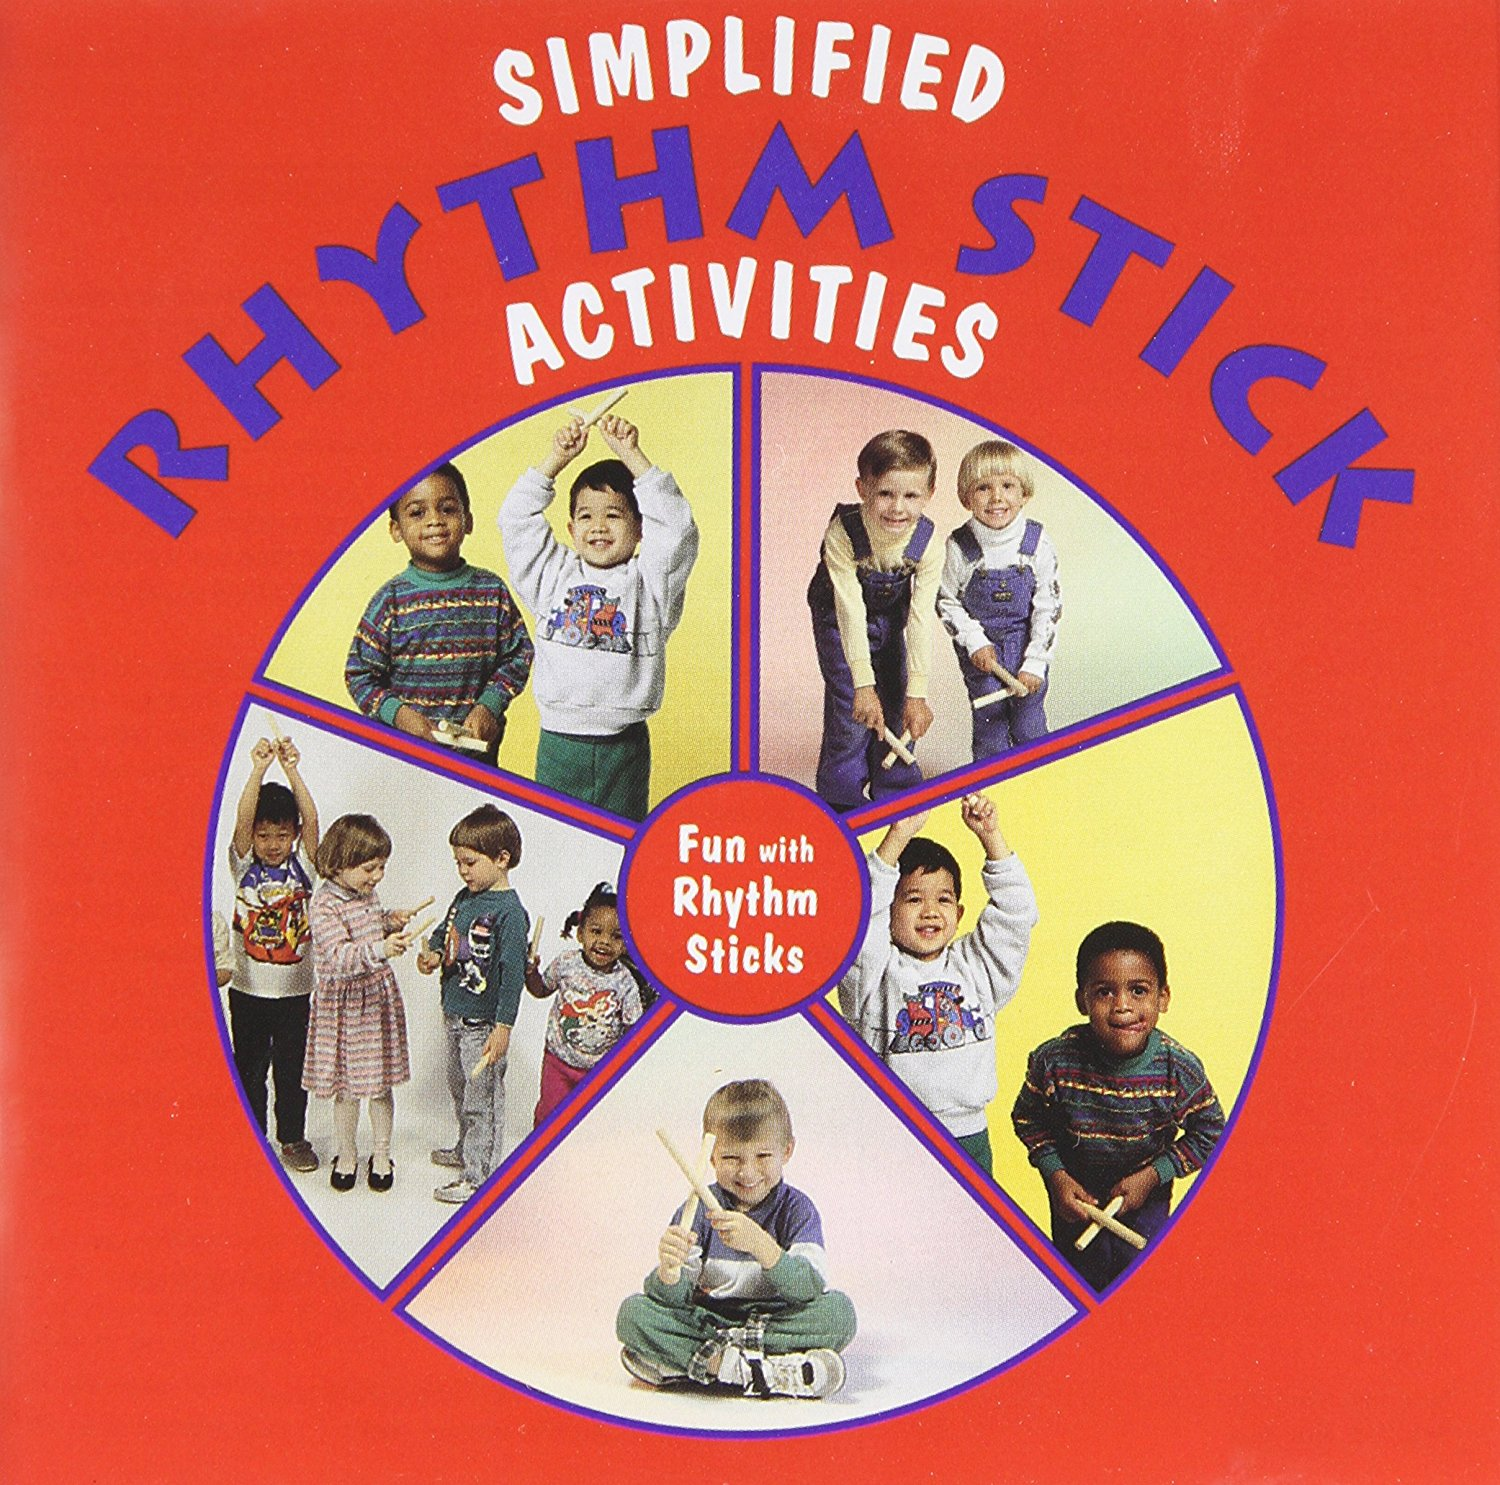 Simplified Rhythm Stick Activities - Tap Your Way To Fun Cd by Kimbo Educational